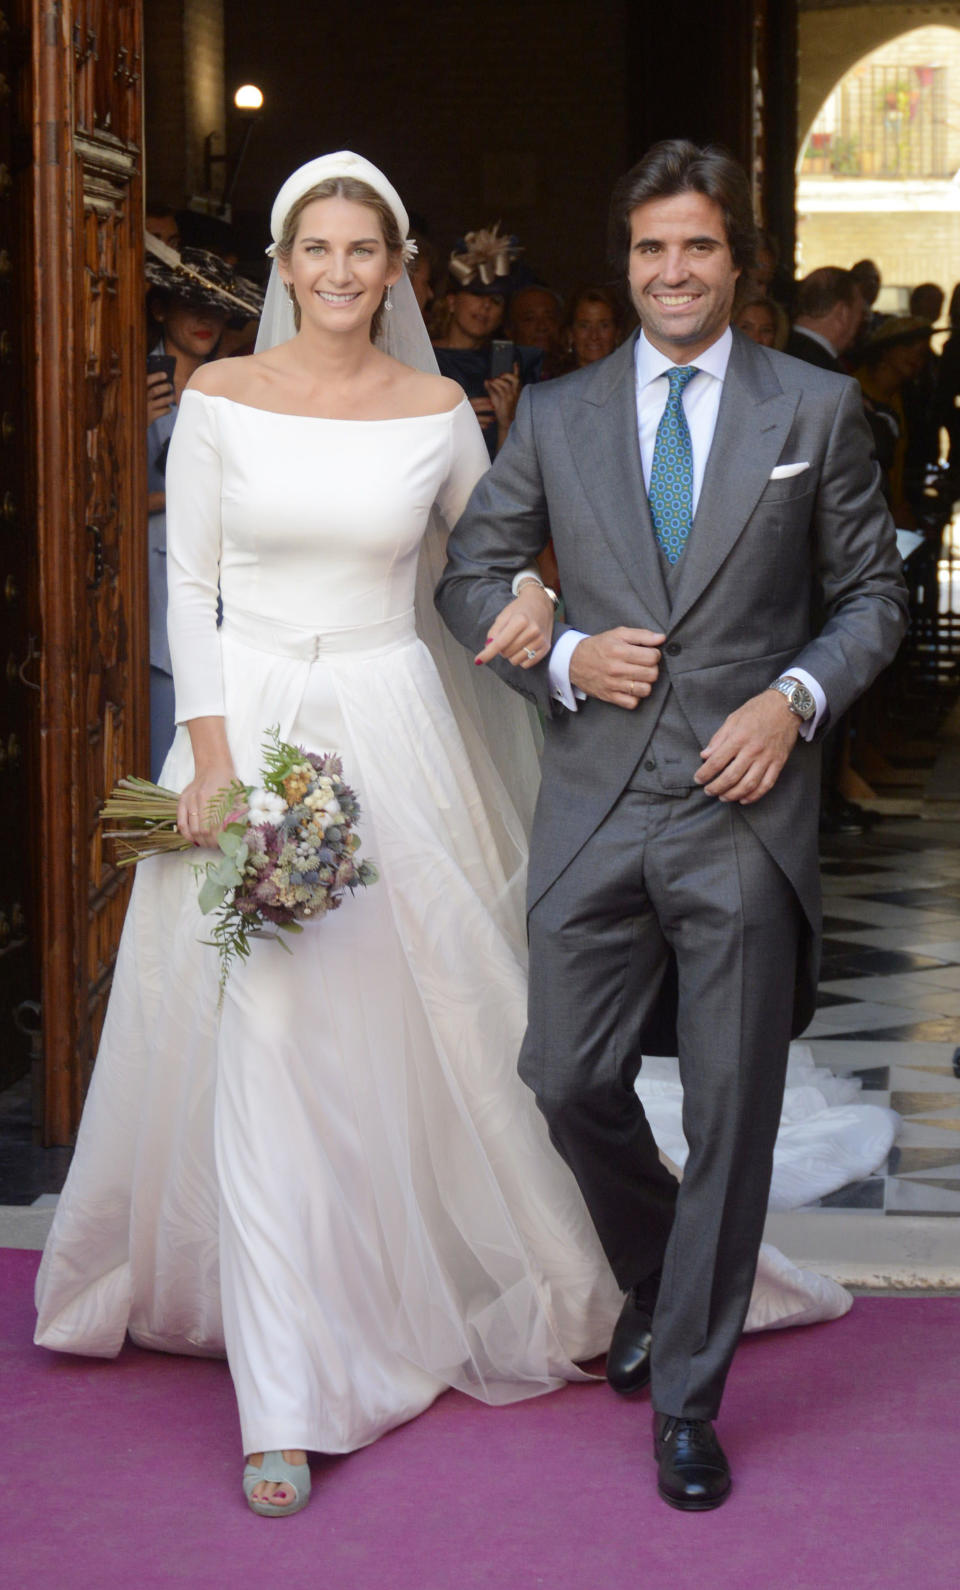 SEVILLE, SPAIN - OCTOBER 07:  Sibi Montes and Alvaro Sanchis attend their wedding at Parroquia Santa Ana on October 7, 2017 in Seville, Spain.  (Photo by Europa Press/Europa Press via Getty Images)